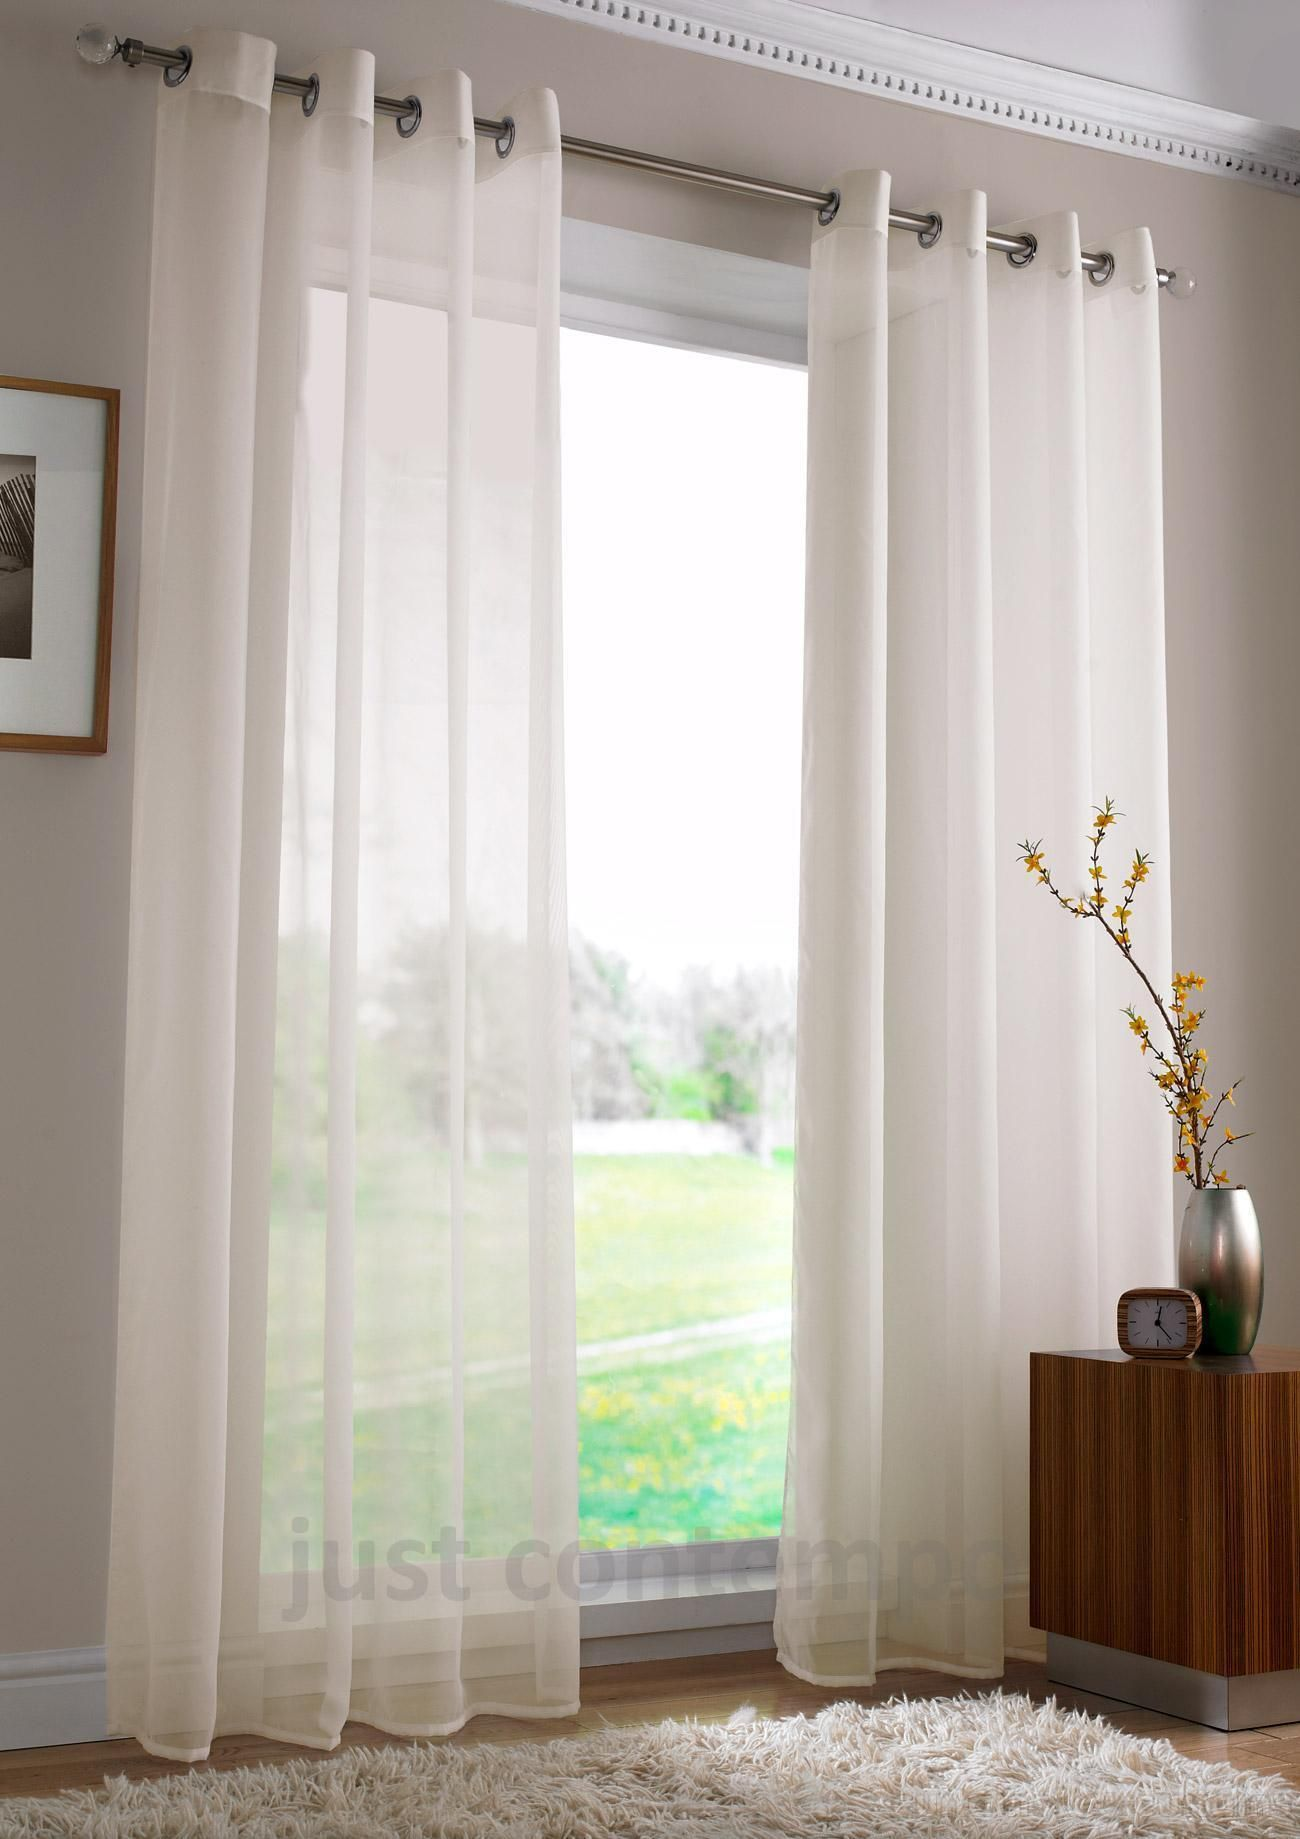 Pin By Homanling On 窗帘 Curtains Net Curtains Curtains